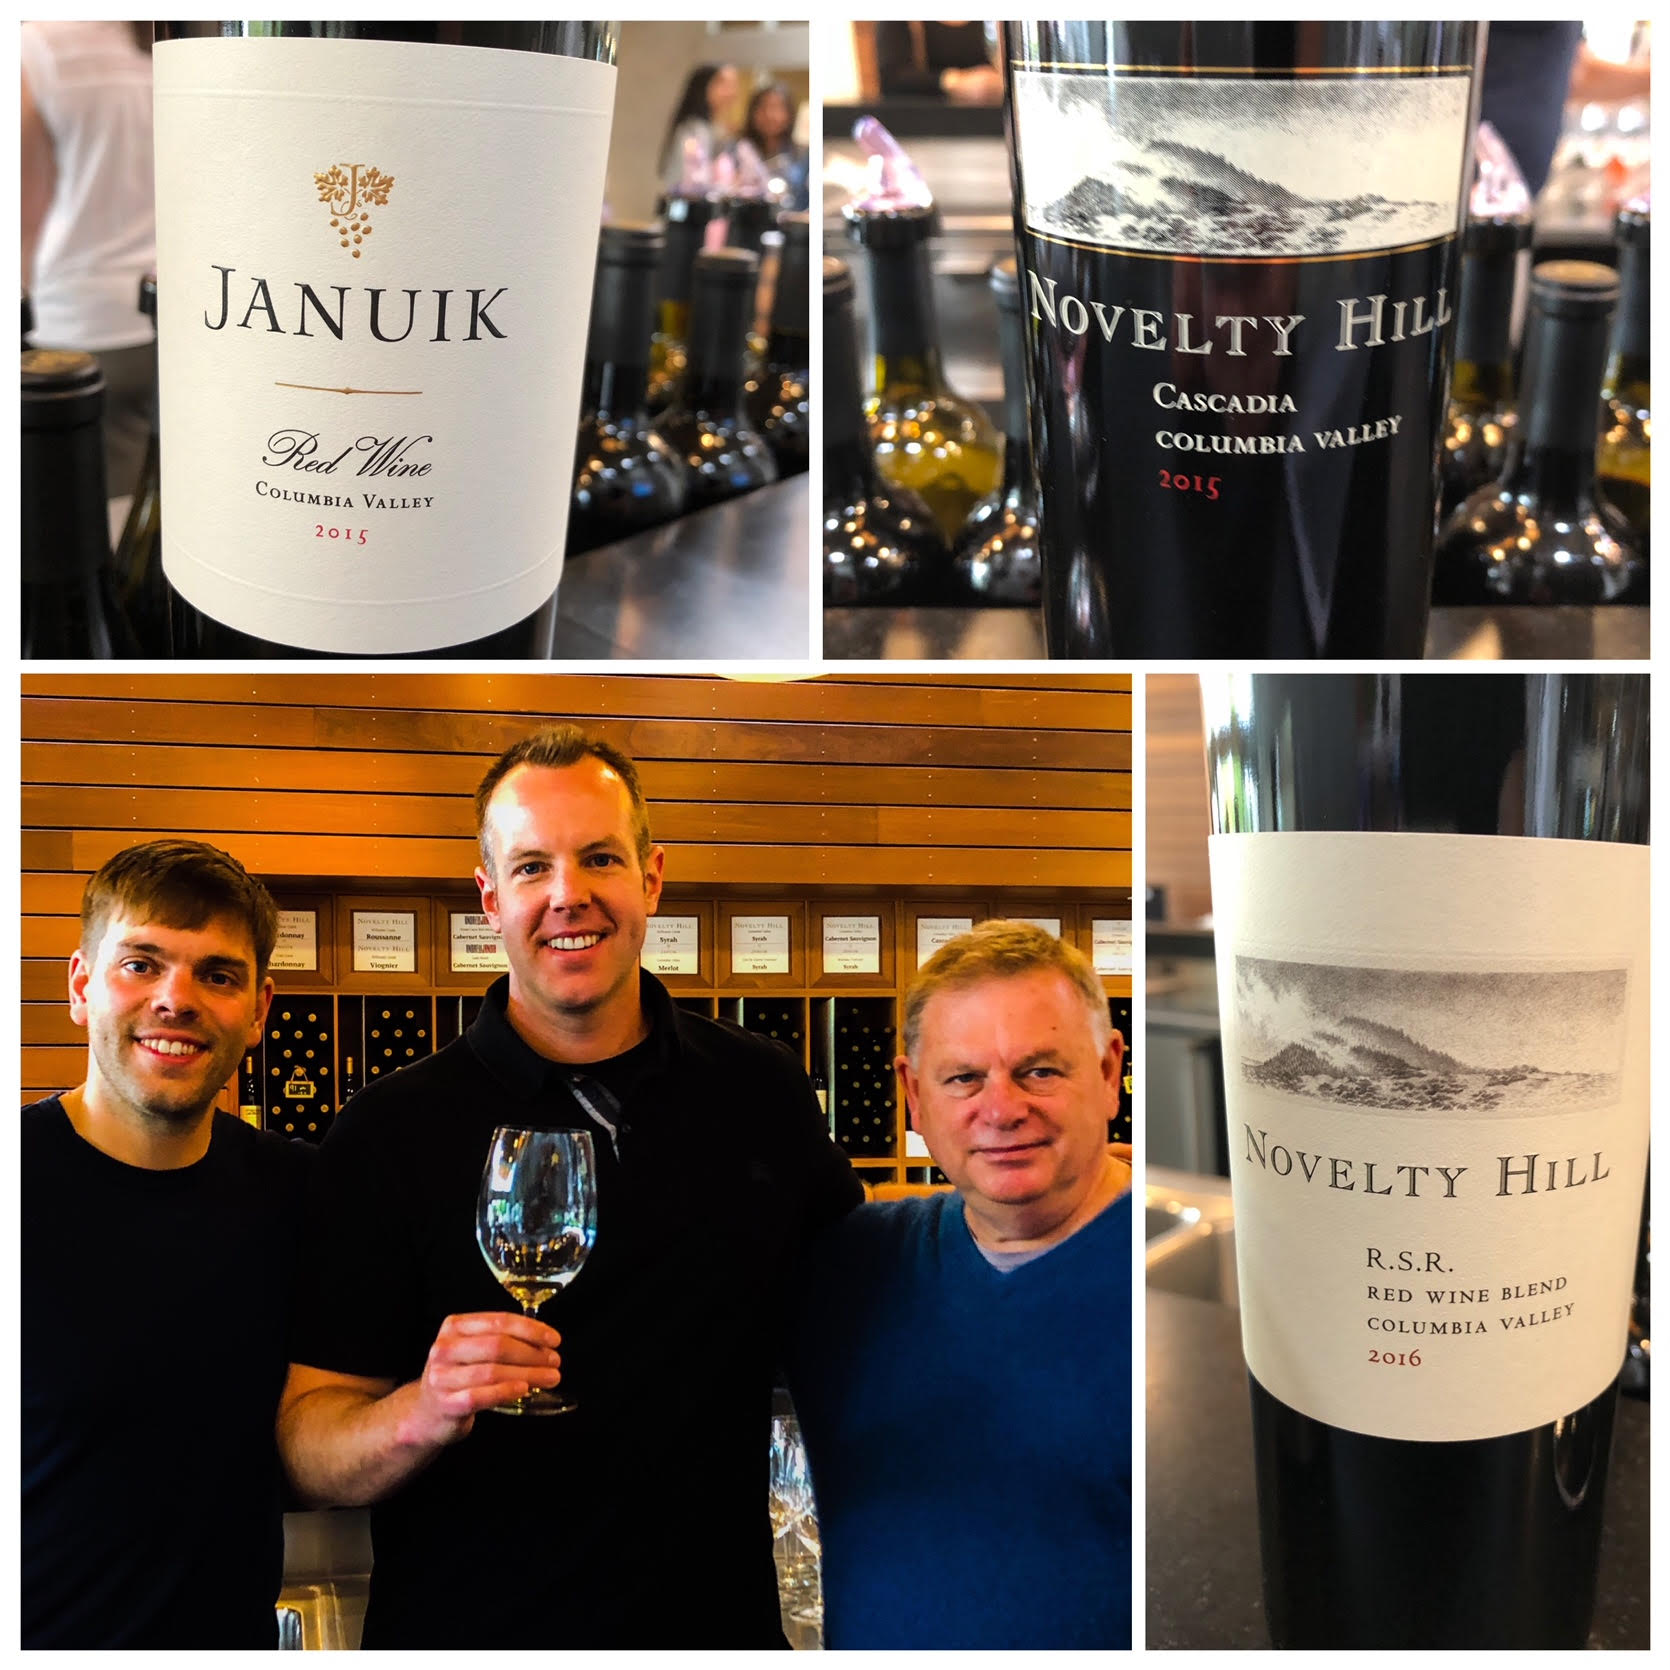 It was a marvelous opportunity to catch up with Mike and Andrew Januik, co-winemakers at one of Washington's outstanding lineups of red and white wines, Januik and Novelty Hill.